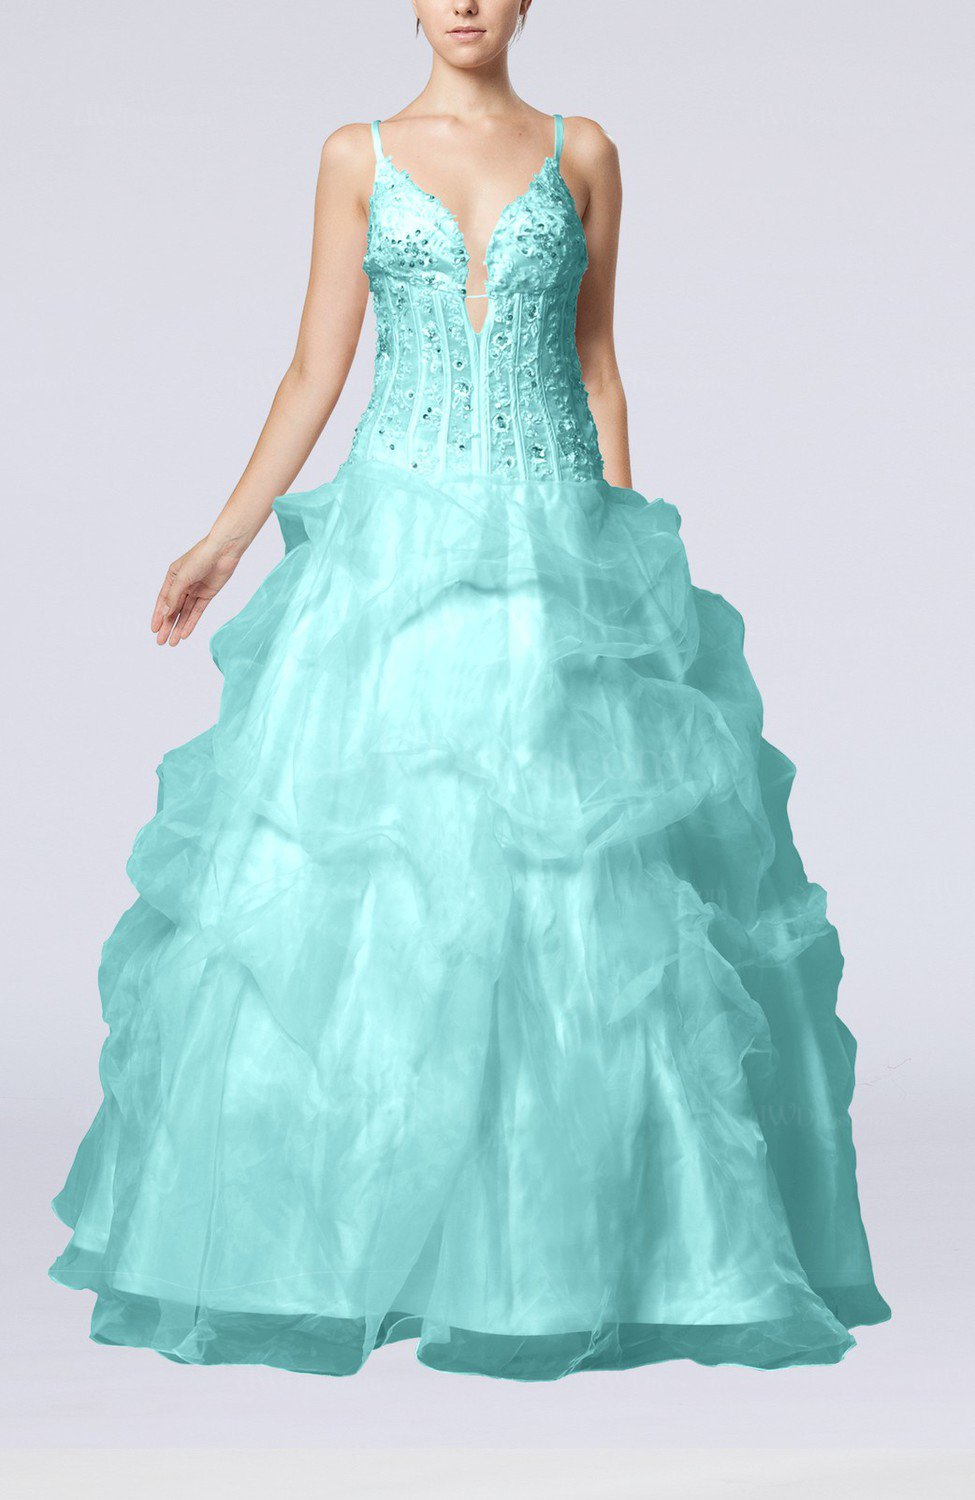 Turquoise Gorgeous Outdoor Spaghetti Sleeveless Backless Organza ...